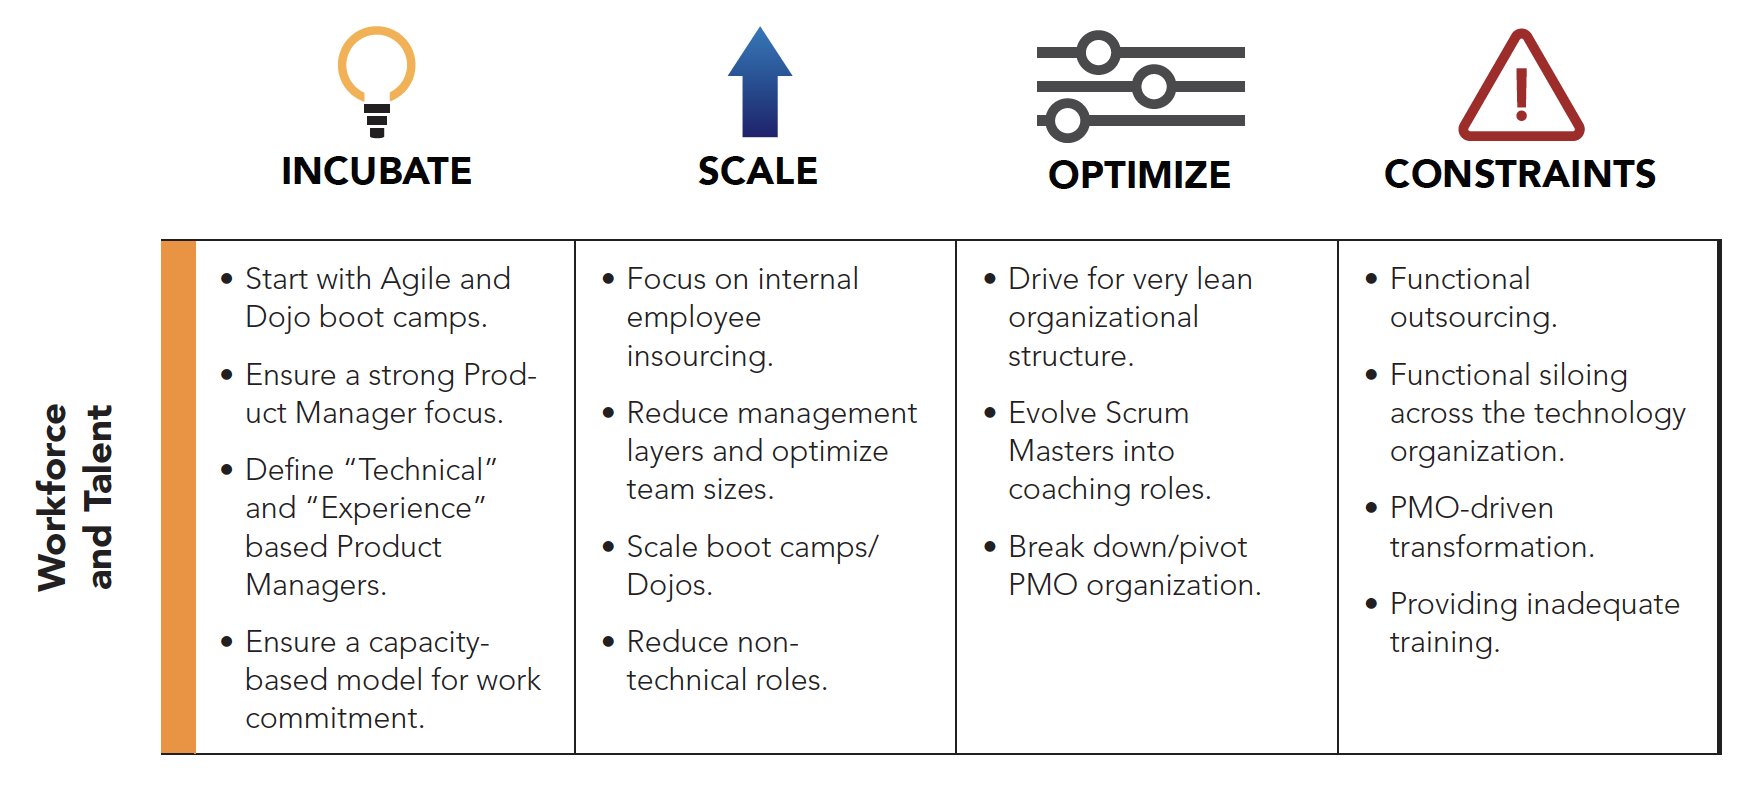 Workforce and Talent: The Seven Domains of Transformation